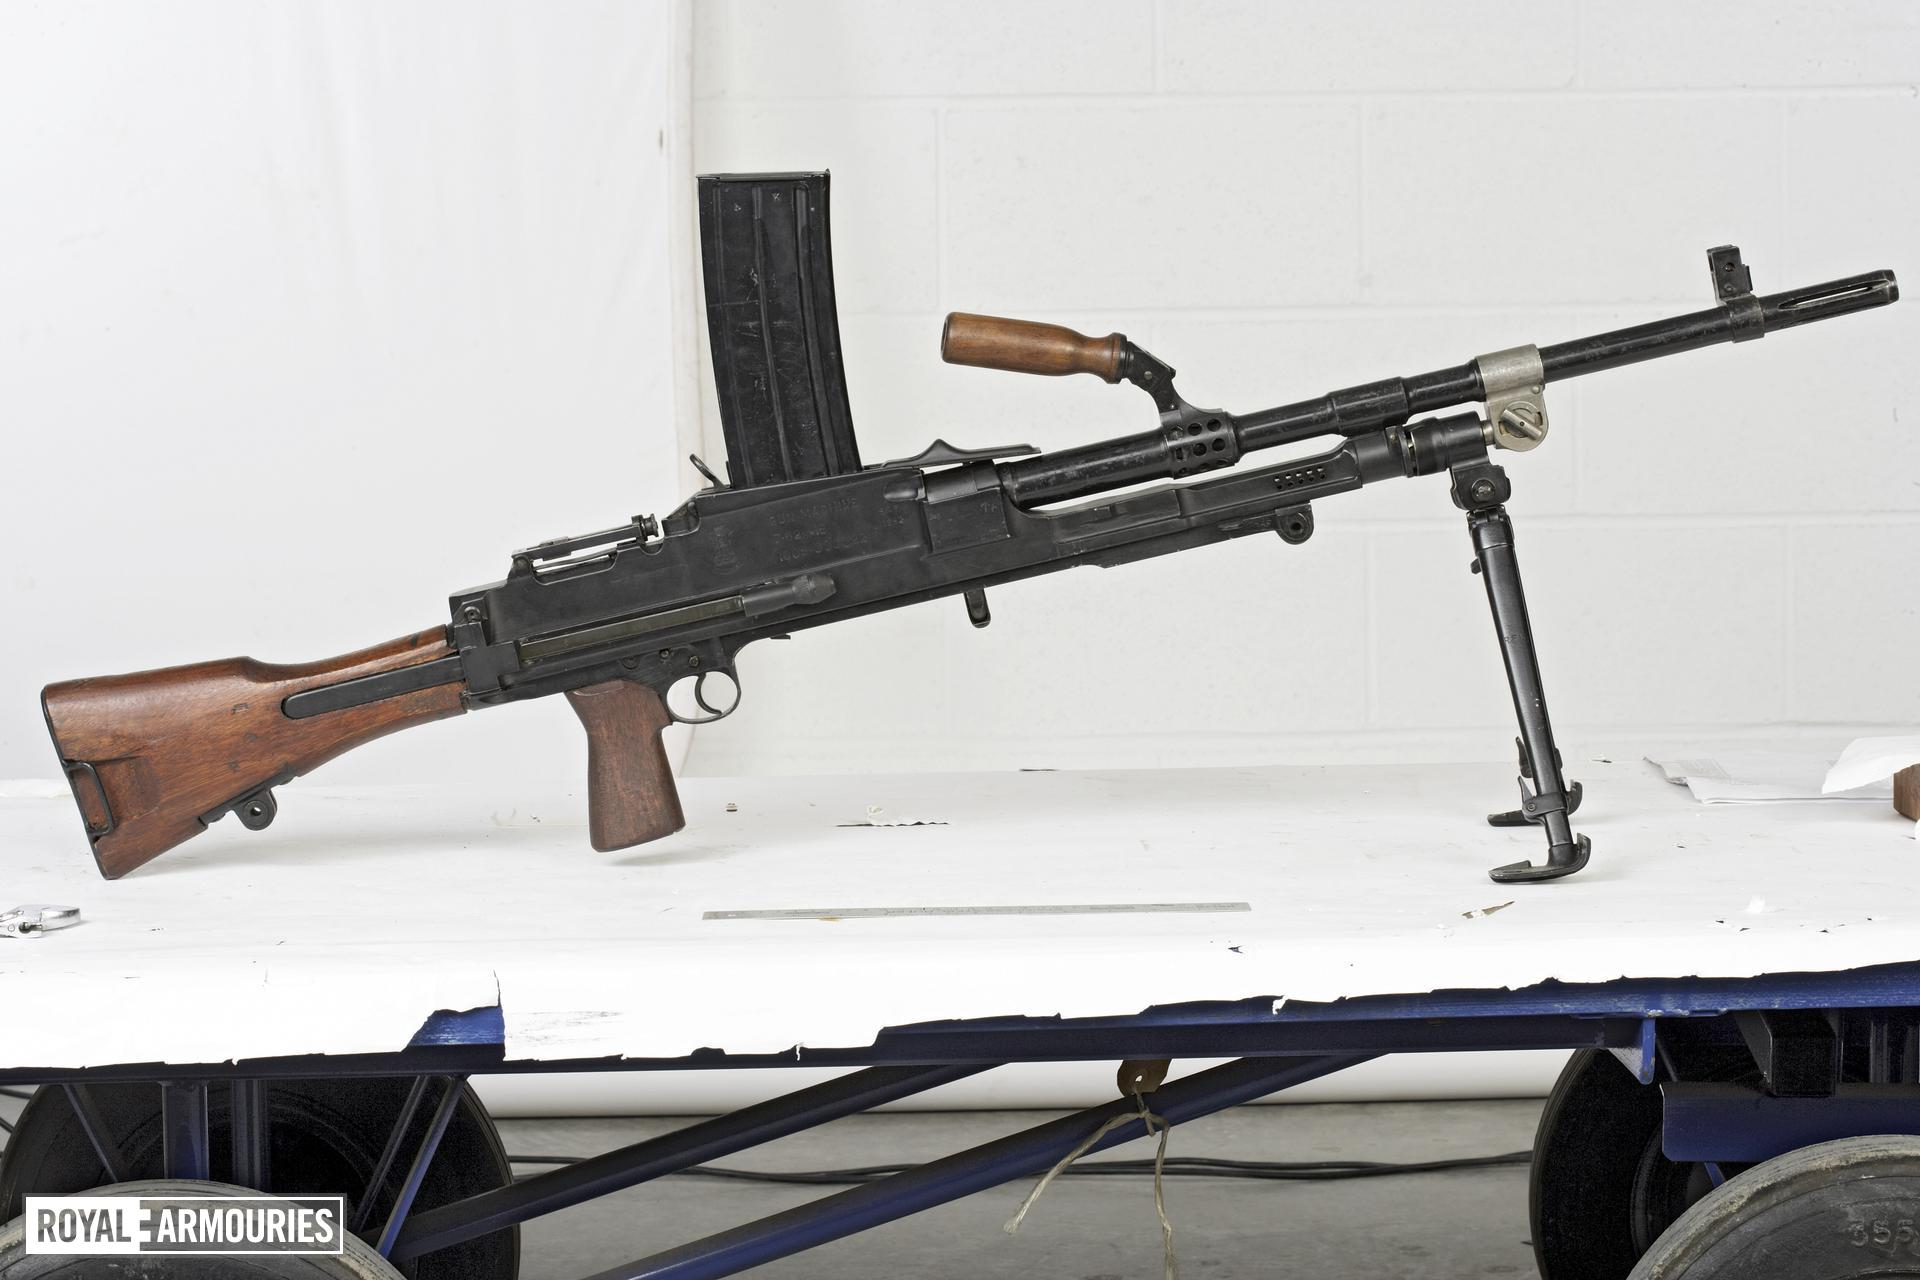 Centrefire automatic machine gun - Bren Model 1B